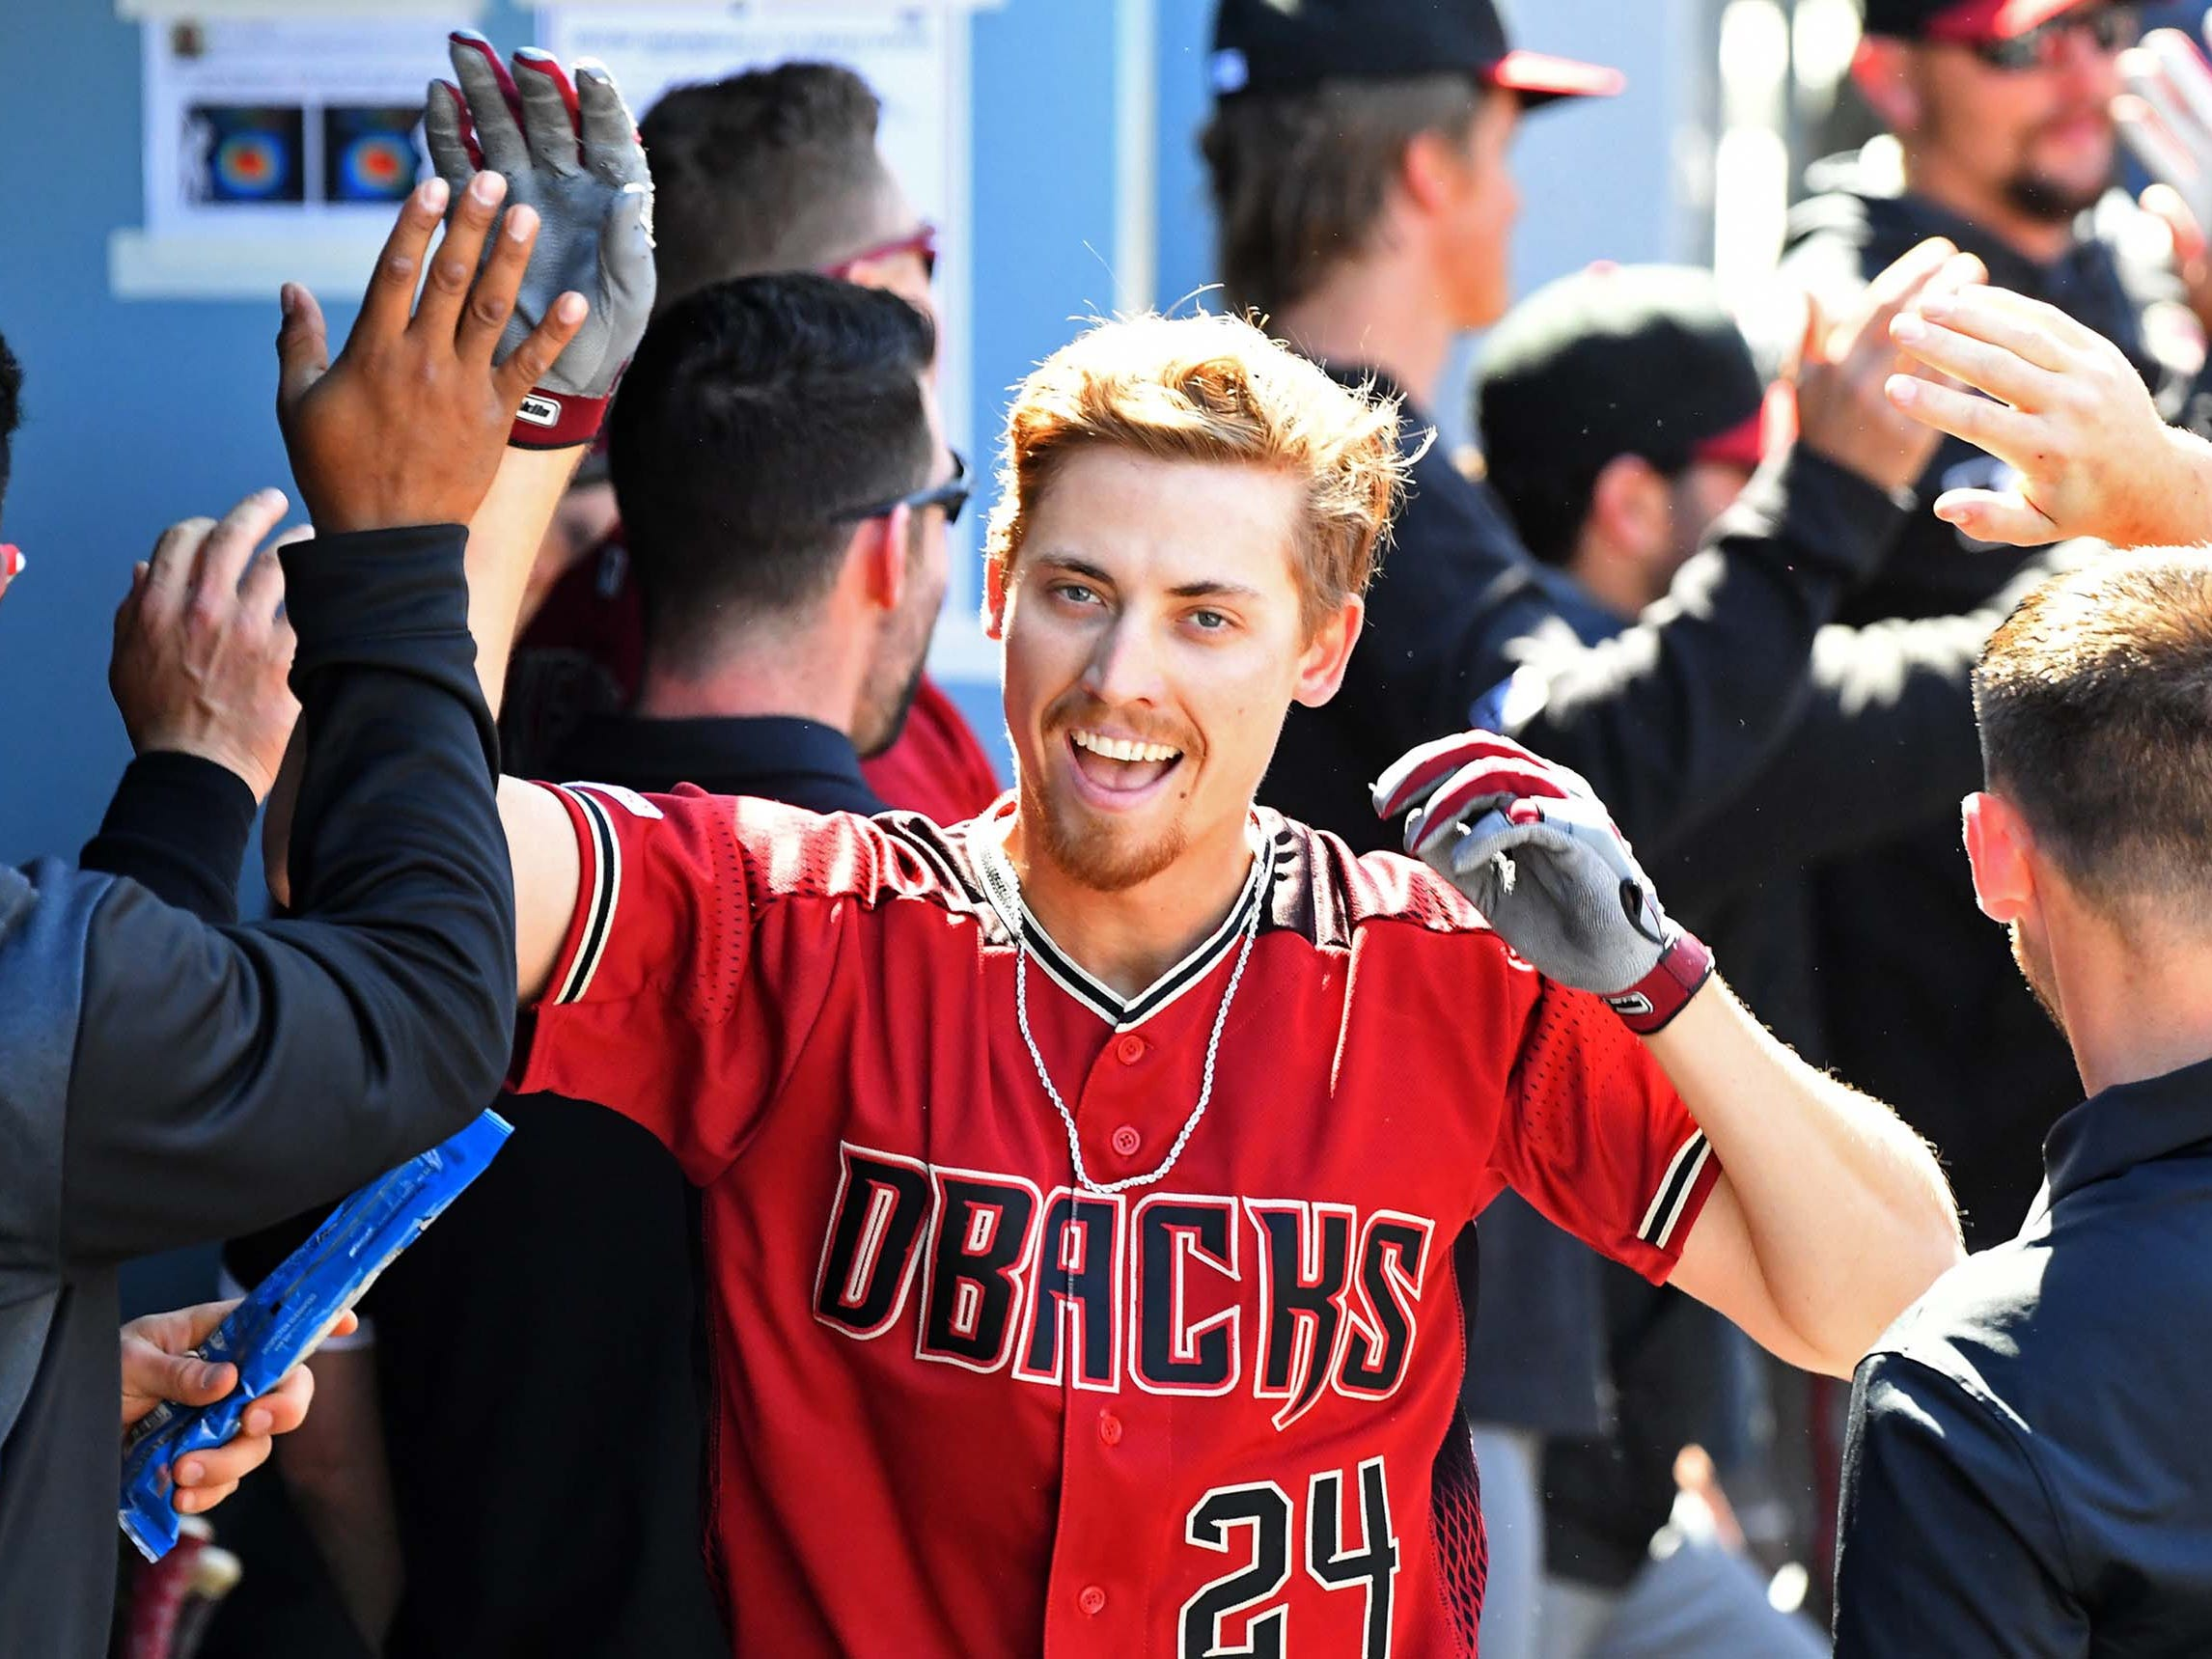 Mar 31, 2019; Los Angeles, CA, USA; Arizona Diamondbacks starting pitcher Luke Weaver (24) is greeted in the dugout after hitting a solo home run in the fourth inning of the game at Dodger Stadium.